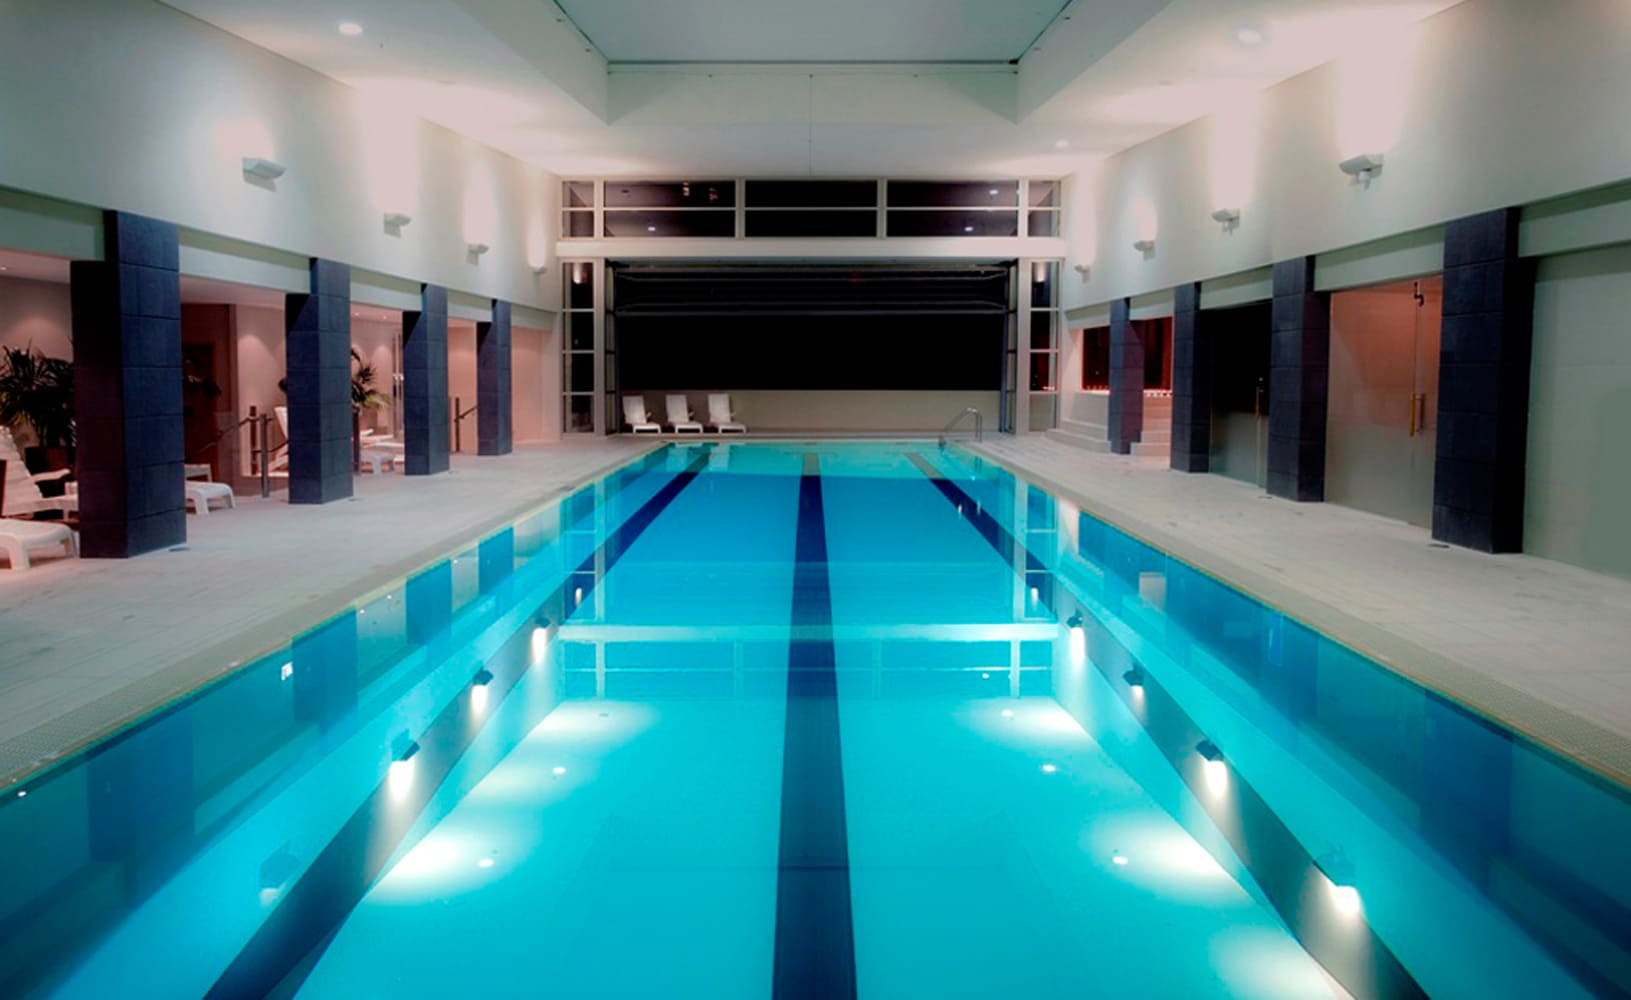 Pullman-Swimming-Pool